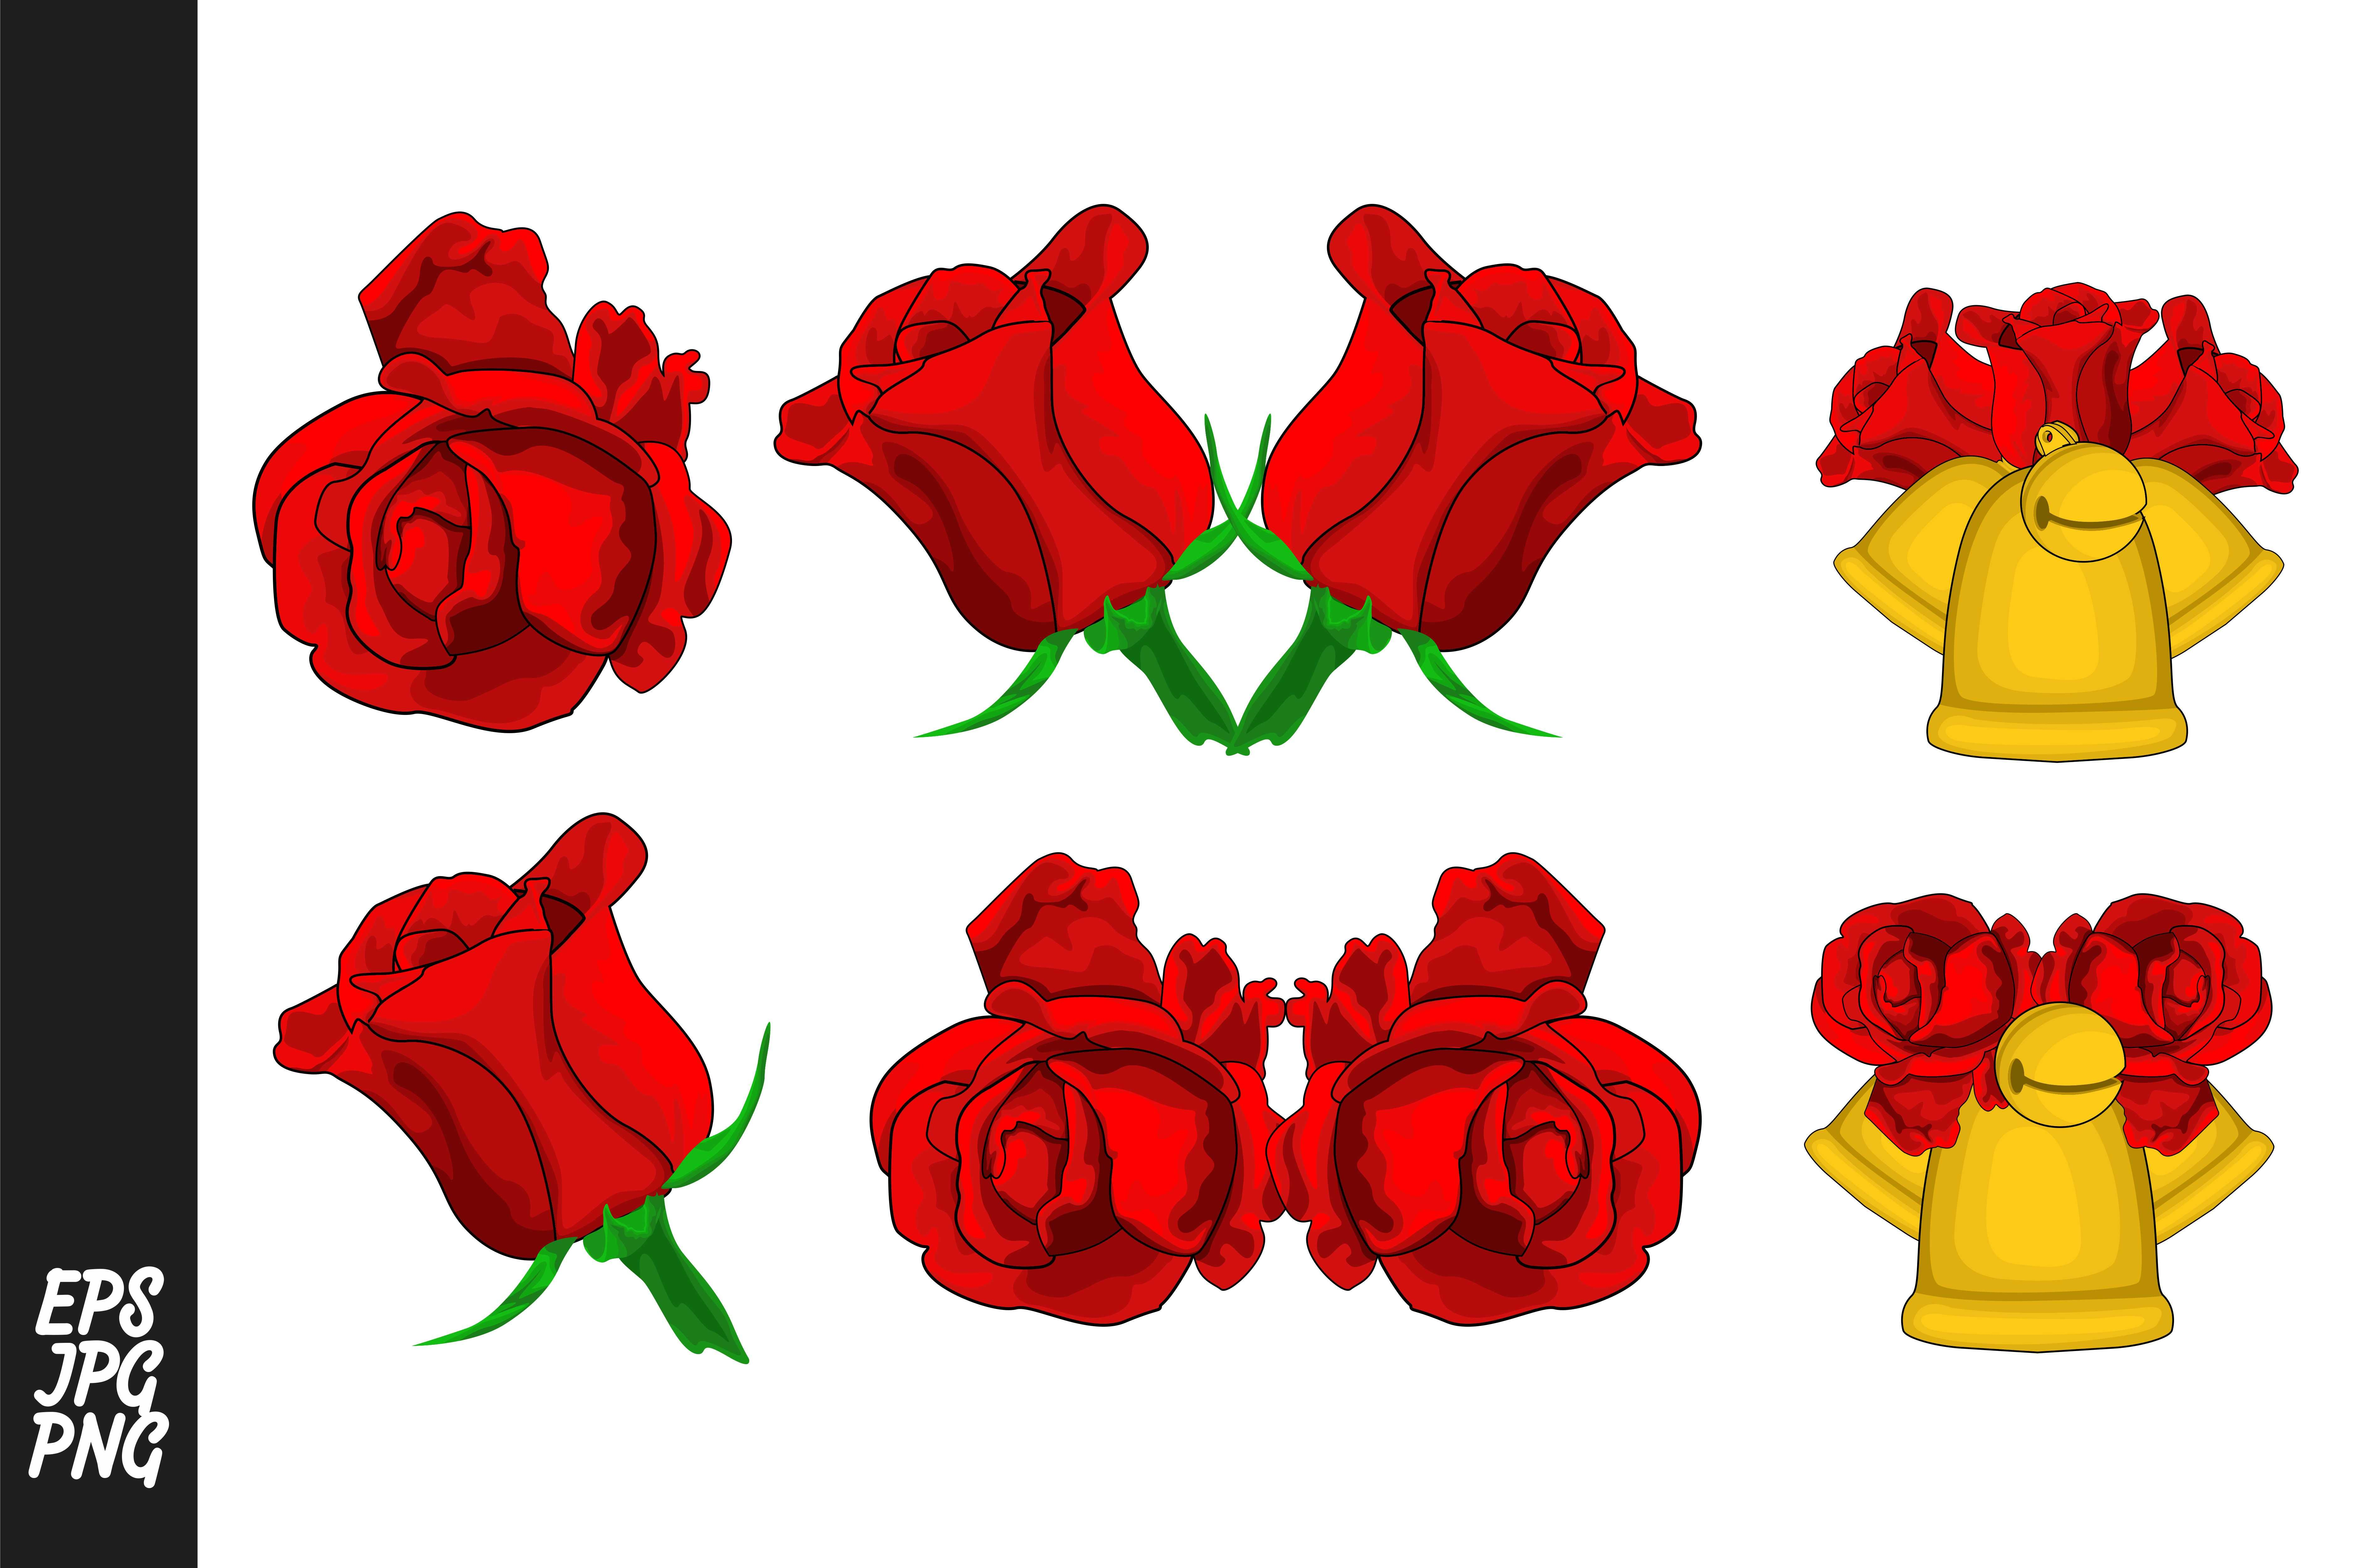 Flower Red Rose Decoration Set Graphic By Arief Sapta Adjie In 2020 Rose Decor Red Roses Flowers